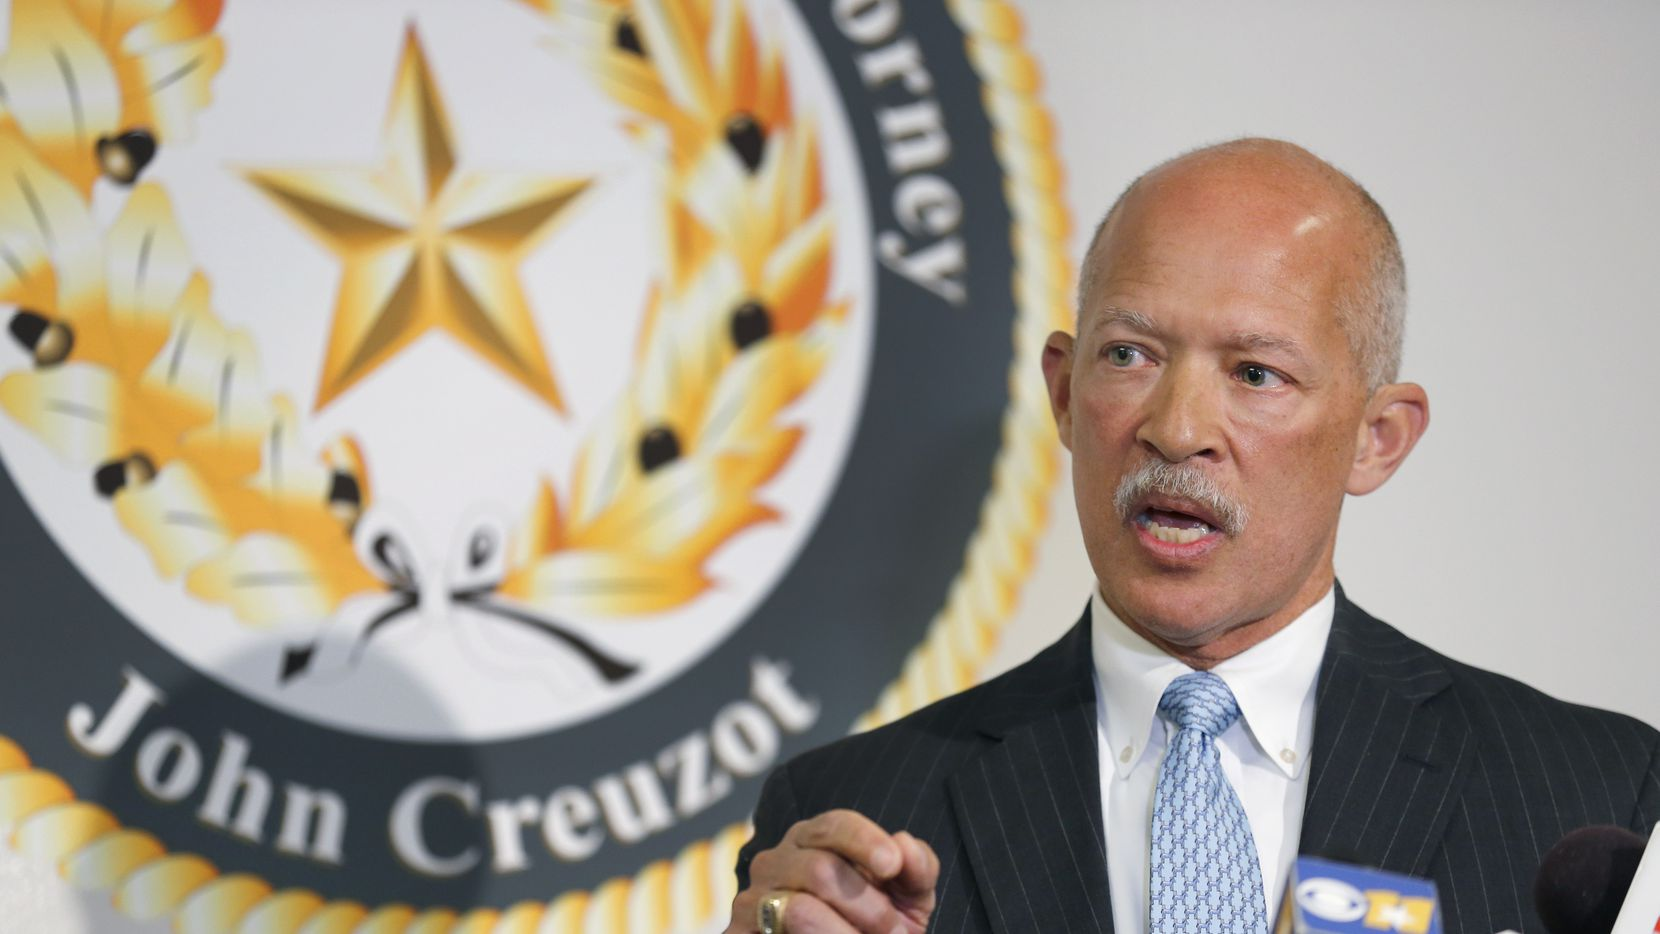 File image of Dallas County District Attorney John Creuzot speaking during a press conference at the Frank Crowley Courts Building in Dallas, Wednesday, January 8, 2020.